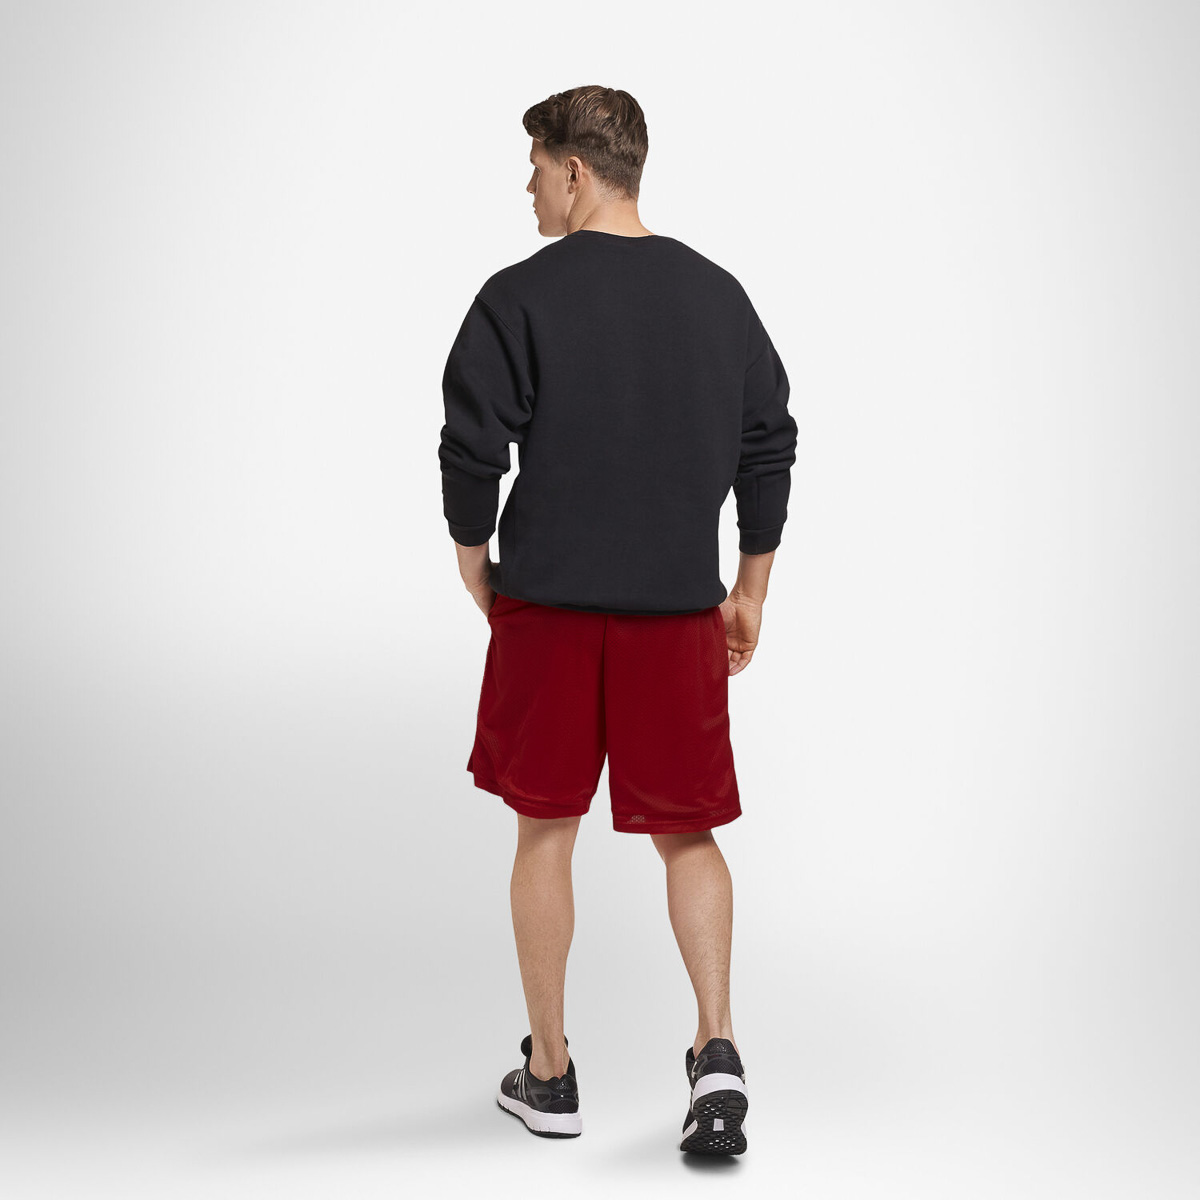 Russell-Athletic-Mens-Shorts-With-Pockets-Mesh-Moisture-Wicking-Gym-Activewear thumbnail 30